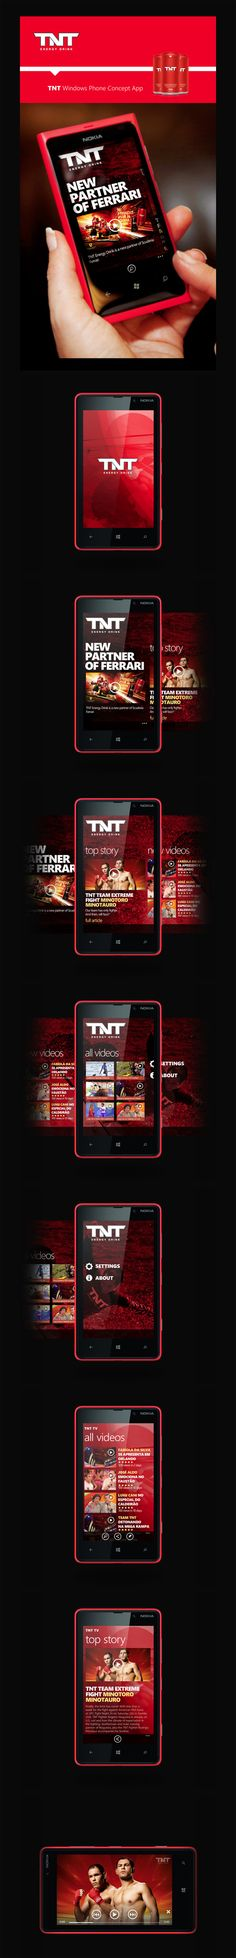 TNT Energy Drink - App for Windows Phone by Robson Pereira, via Behance *** Proposed Application TNT Energy Drink